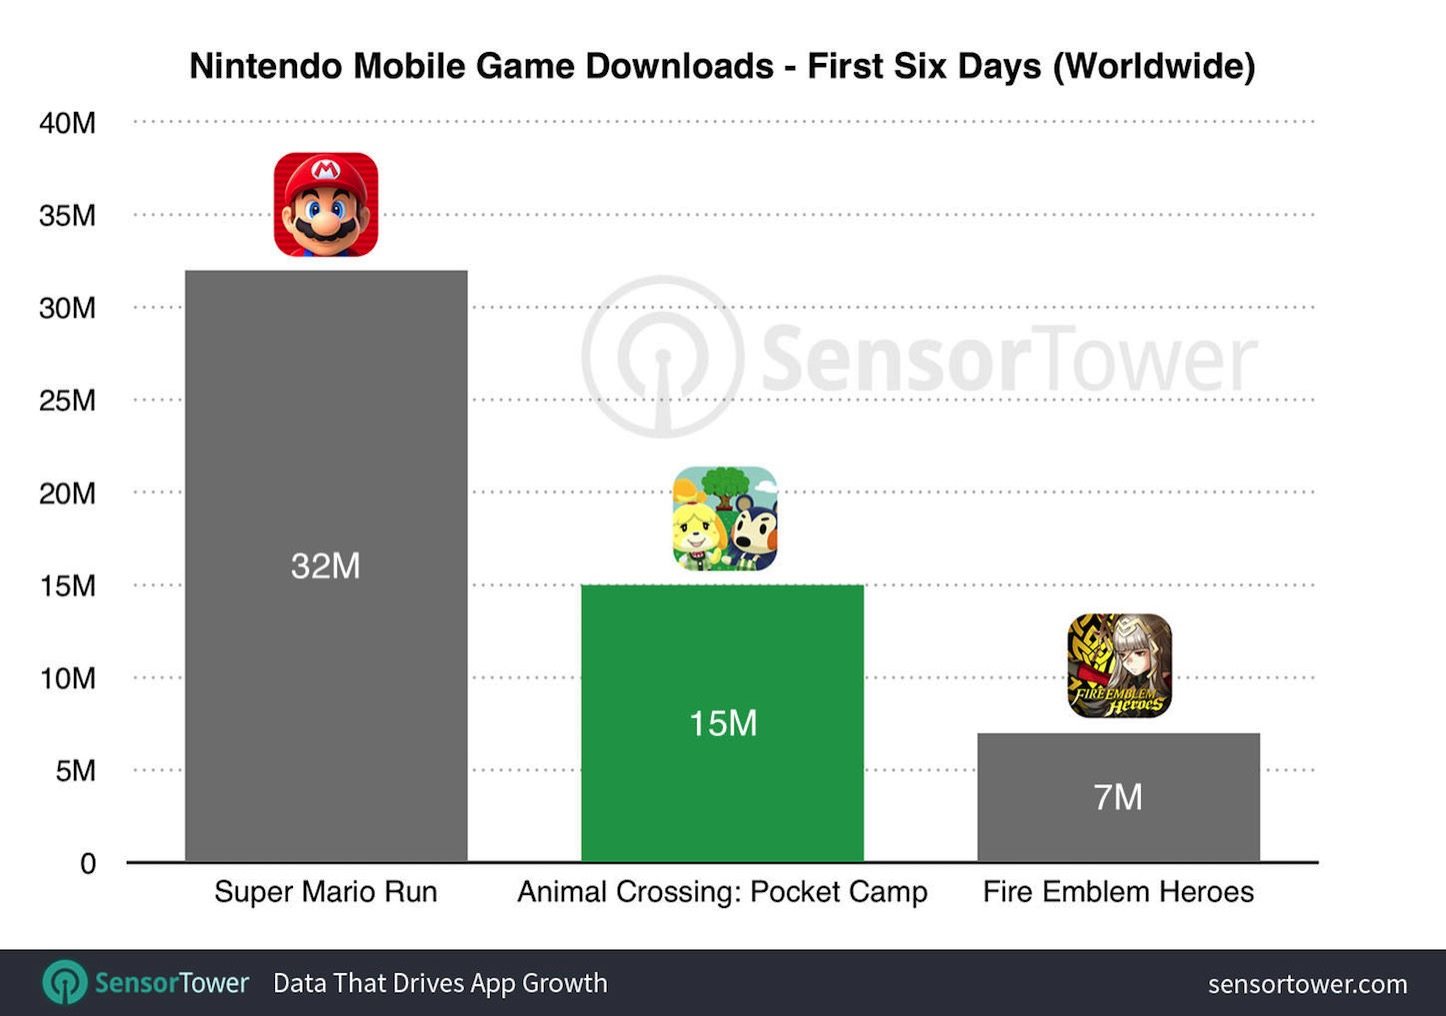 Animal Crossing comes in second